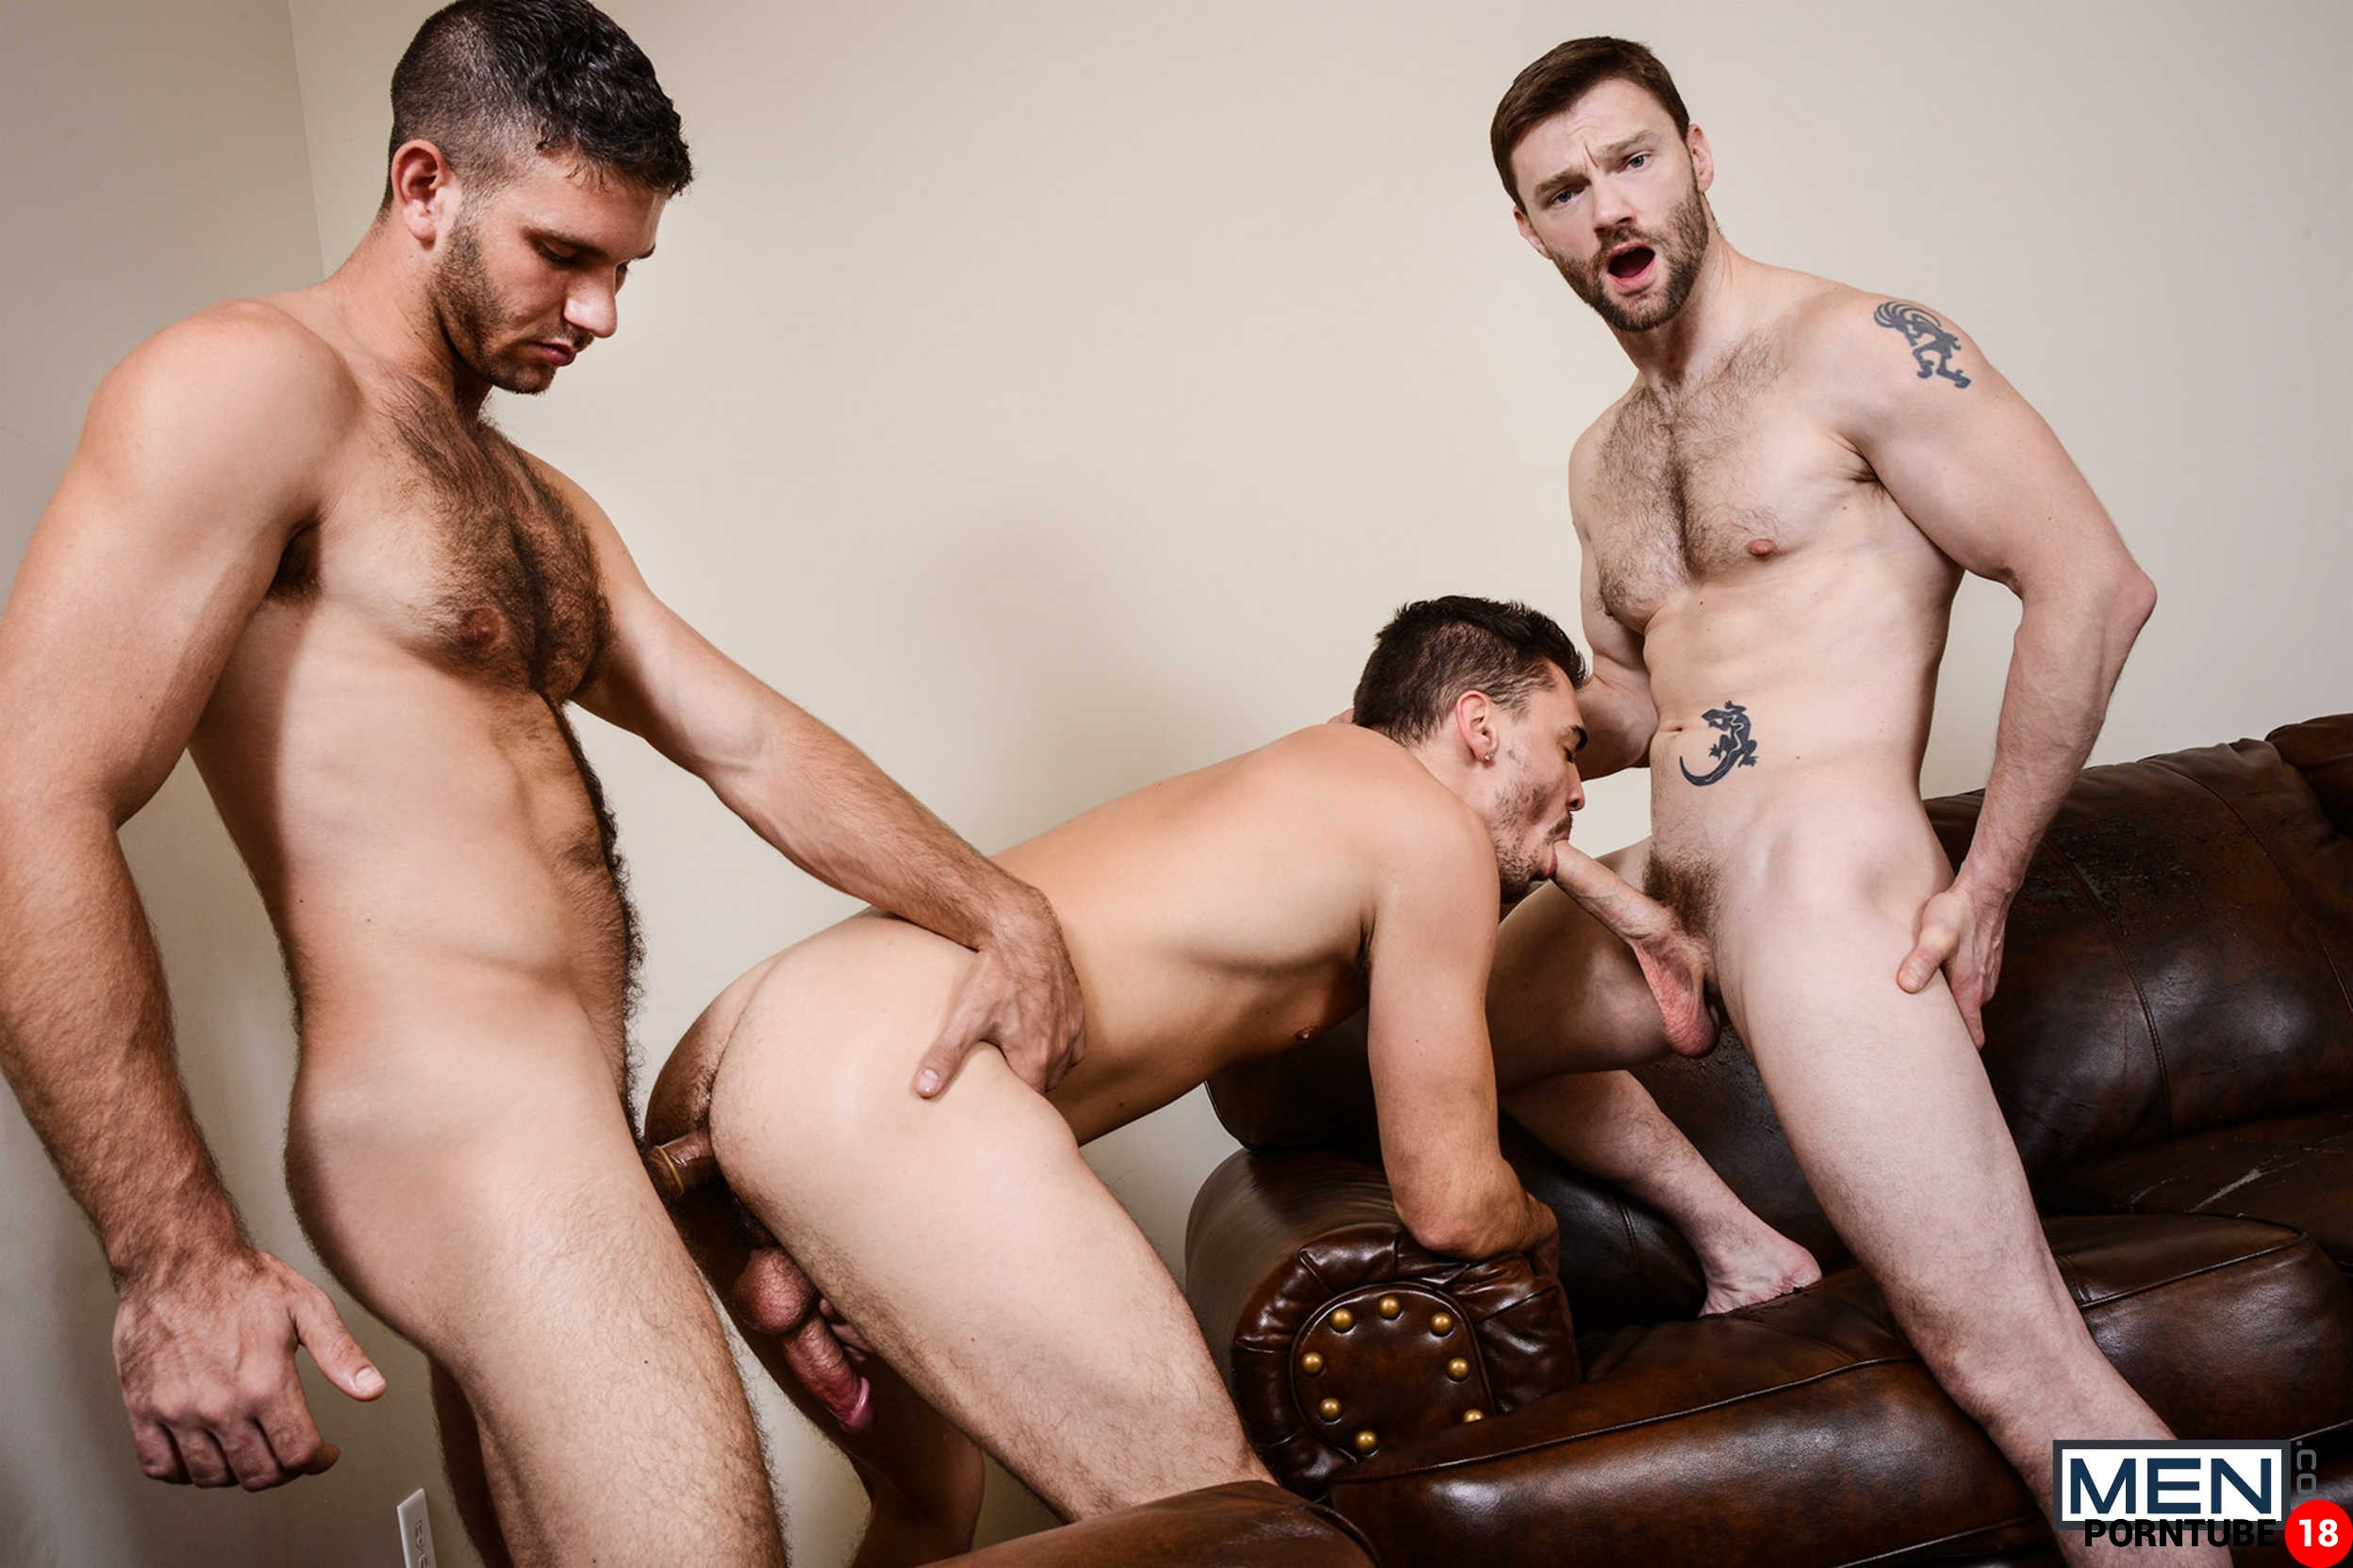 Adam Ruso Porn gentlemenscloset – walk in closet adam russo & heath